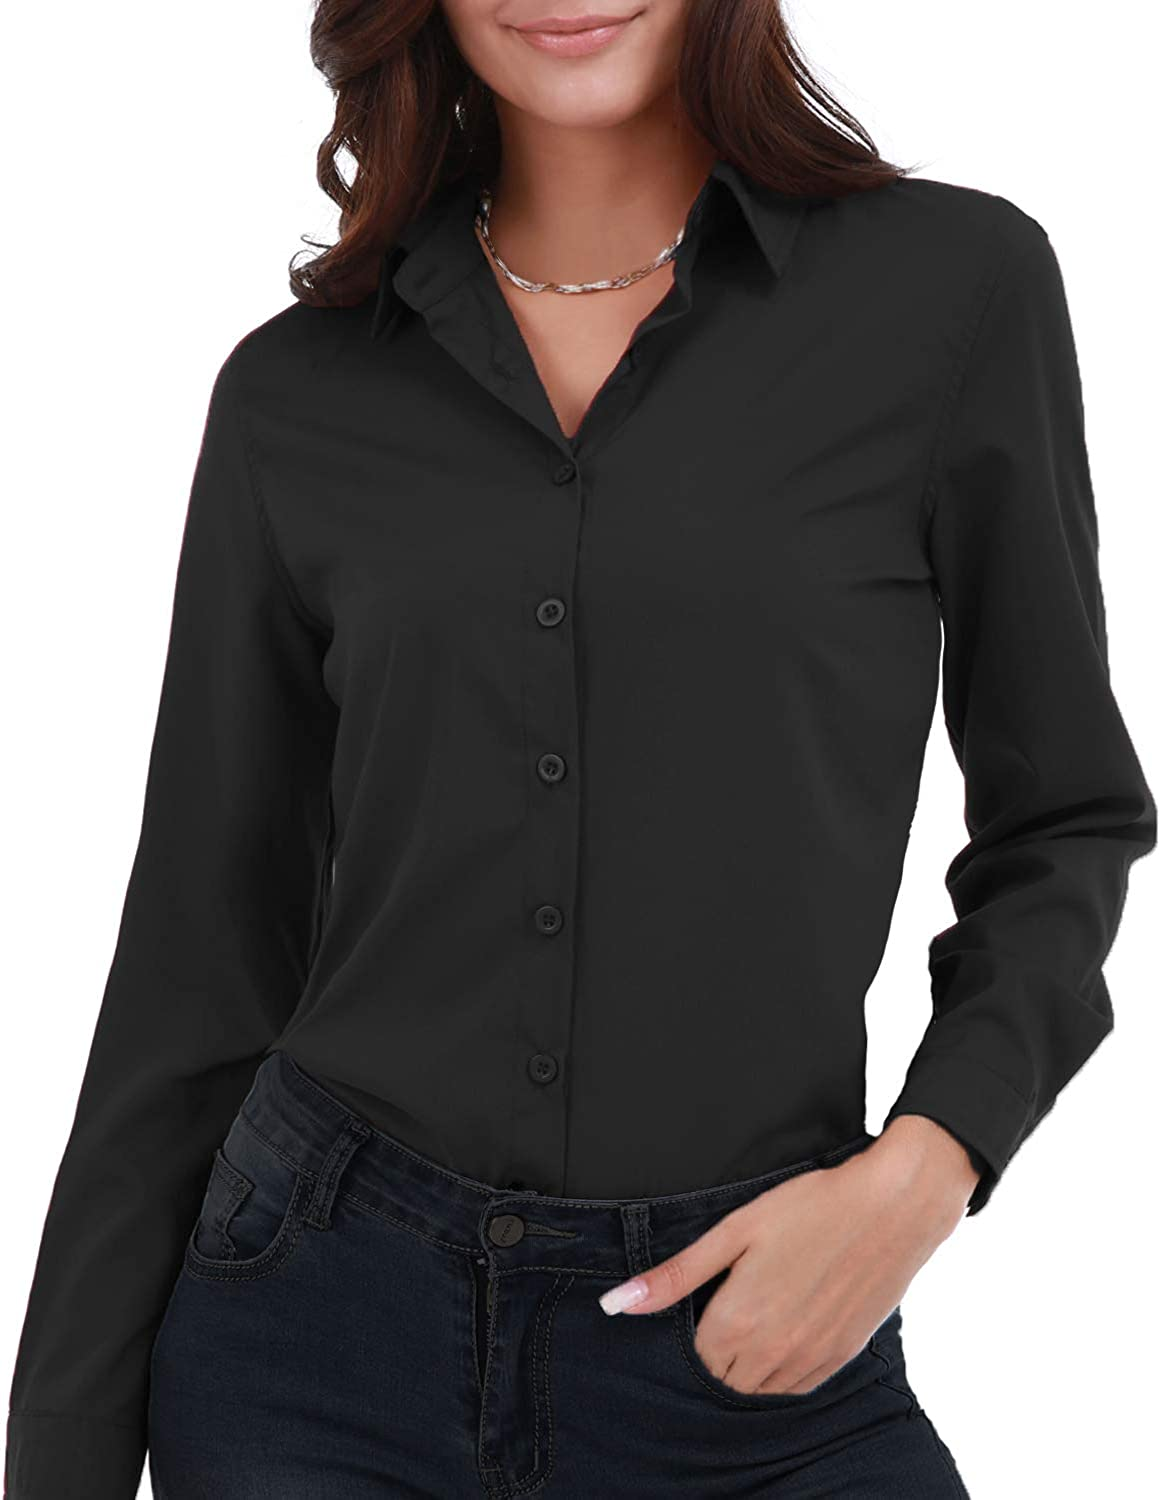 Gemolly Women's Basic Button Down Shirts Long Sleeve Plus Size Simple Stretch Formal Casual Shirt Blouse